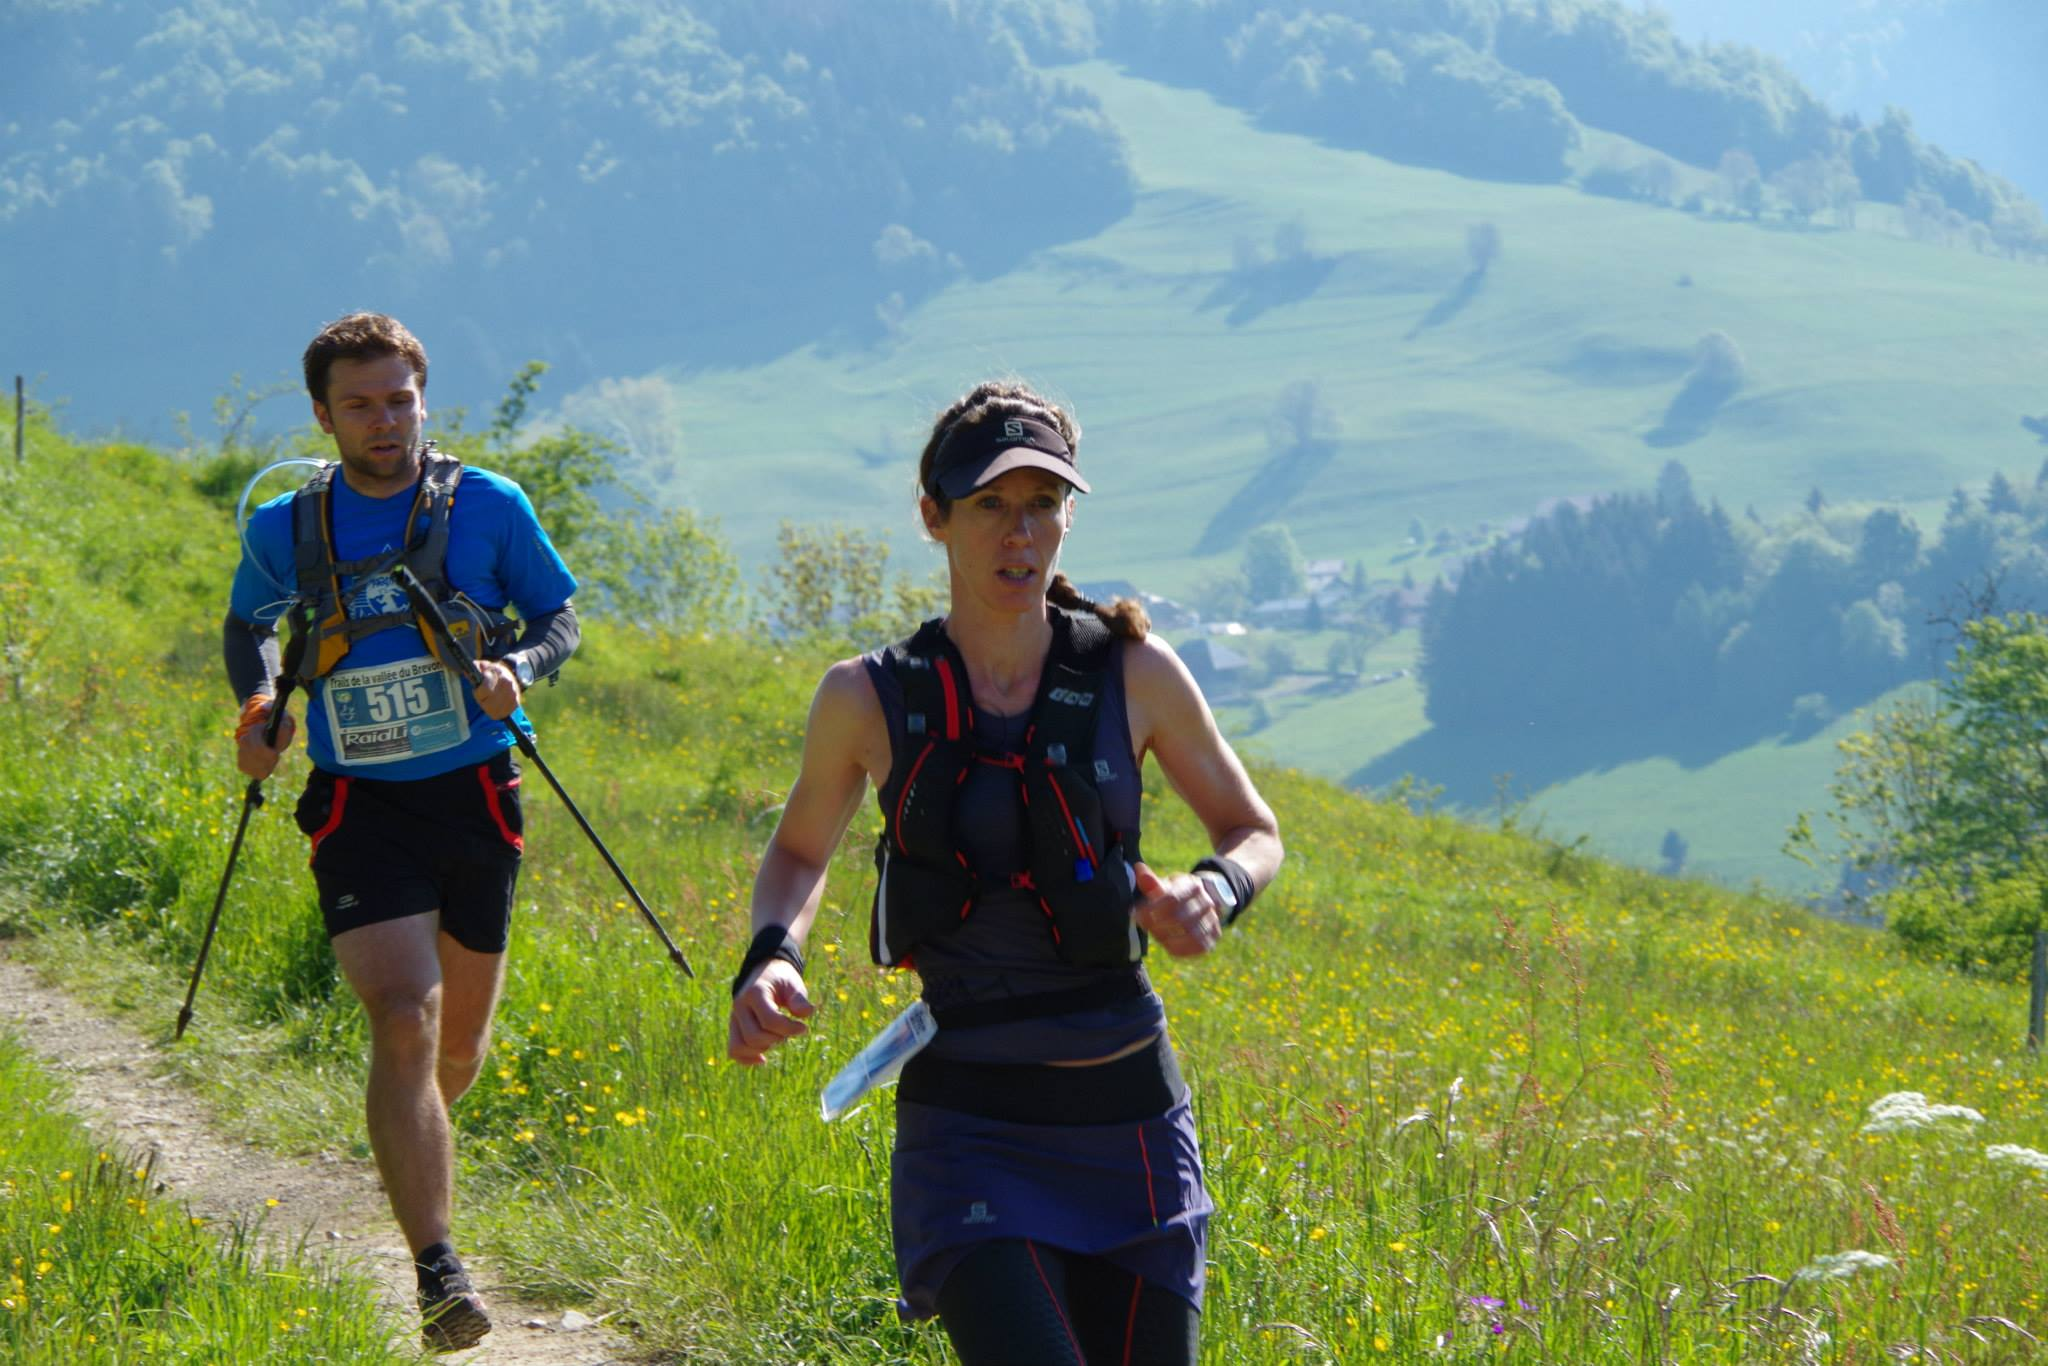 11289358 10153893228737782 38548848338104754 o - RESULTATS, COMMENTAIRES, PHOTOS ET VIDEO DES TRAILS DE LA VALLEE DU BREVON / 24-05-15